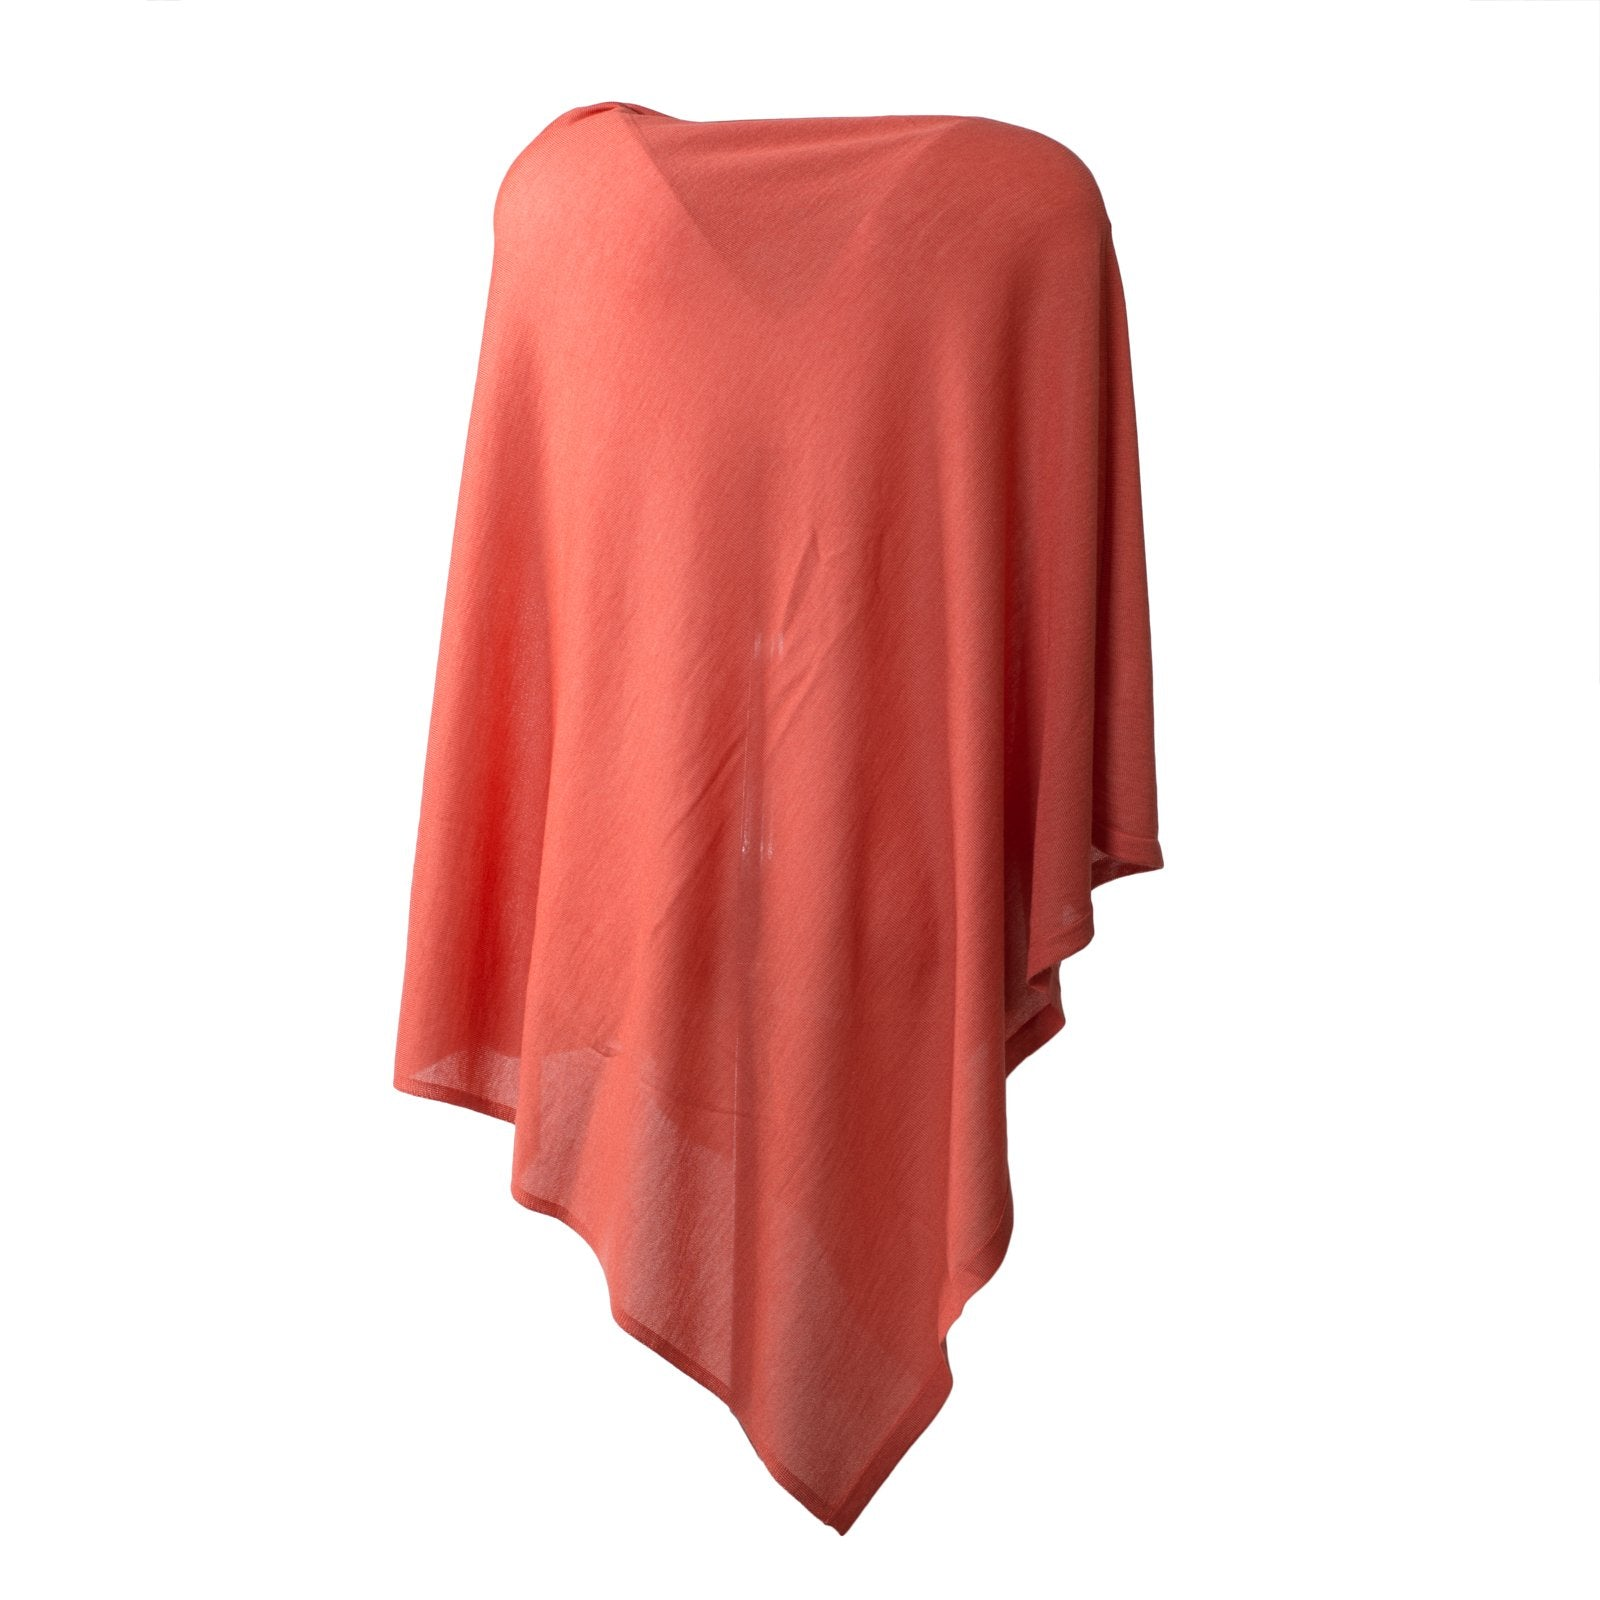 Large Pashmina Poncho in Coral - Jennifer Tattanelli